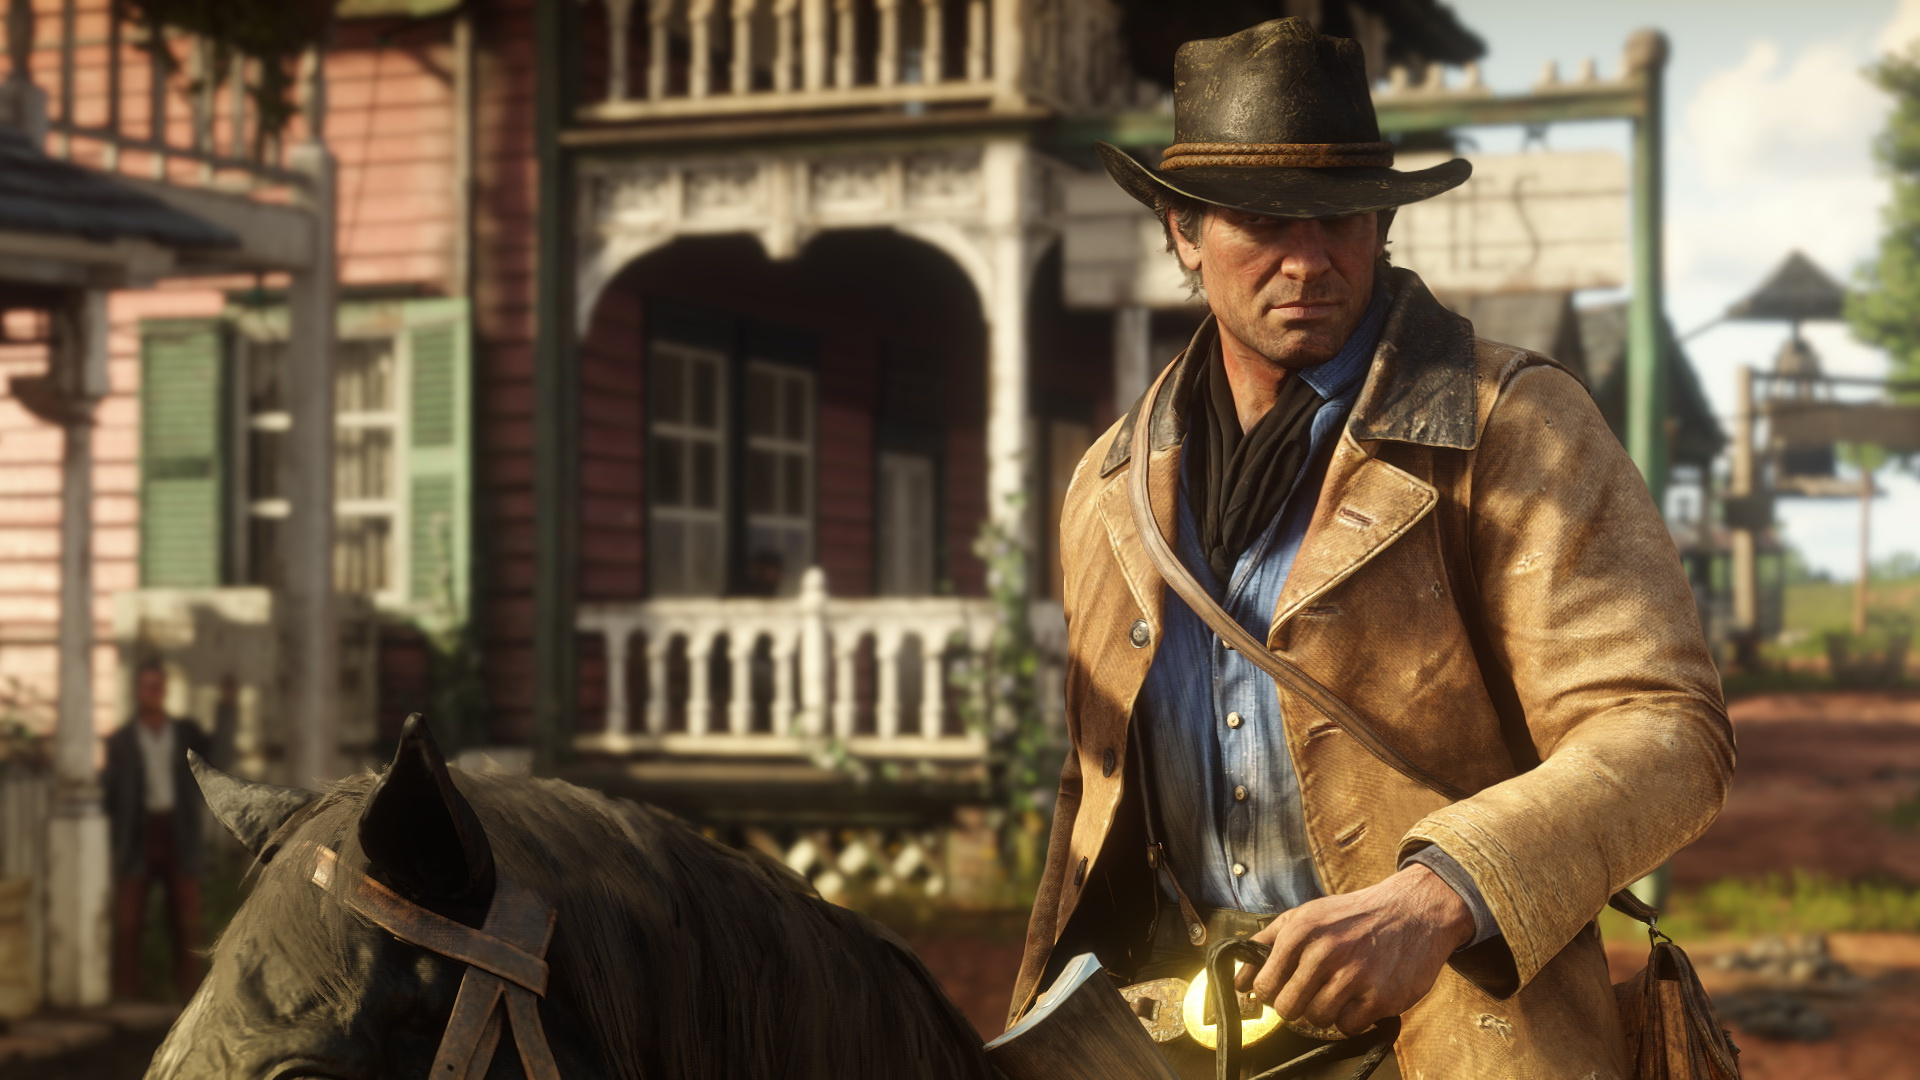 Red Dead Redemption 2 Cheats How To Unlock Cheat Codes And What